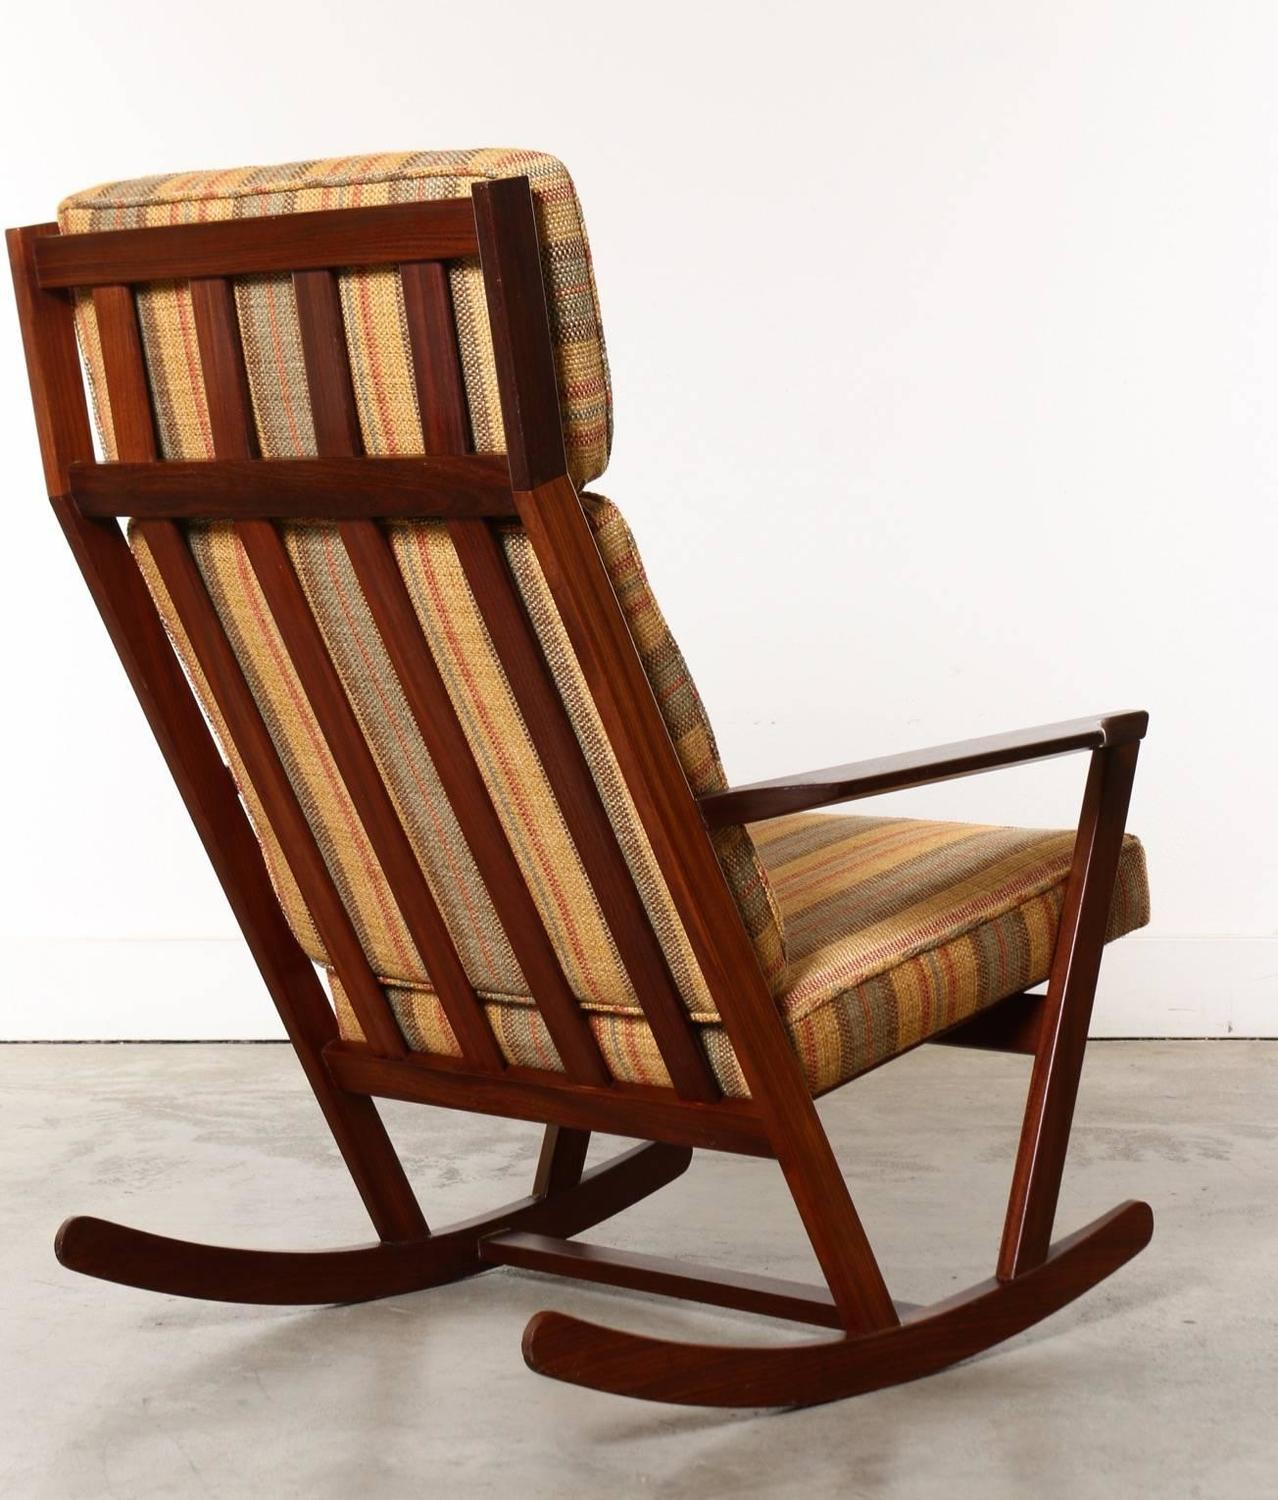 Danish modern wooden rocking chair with cushions designed